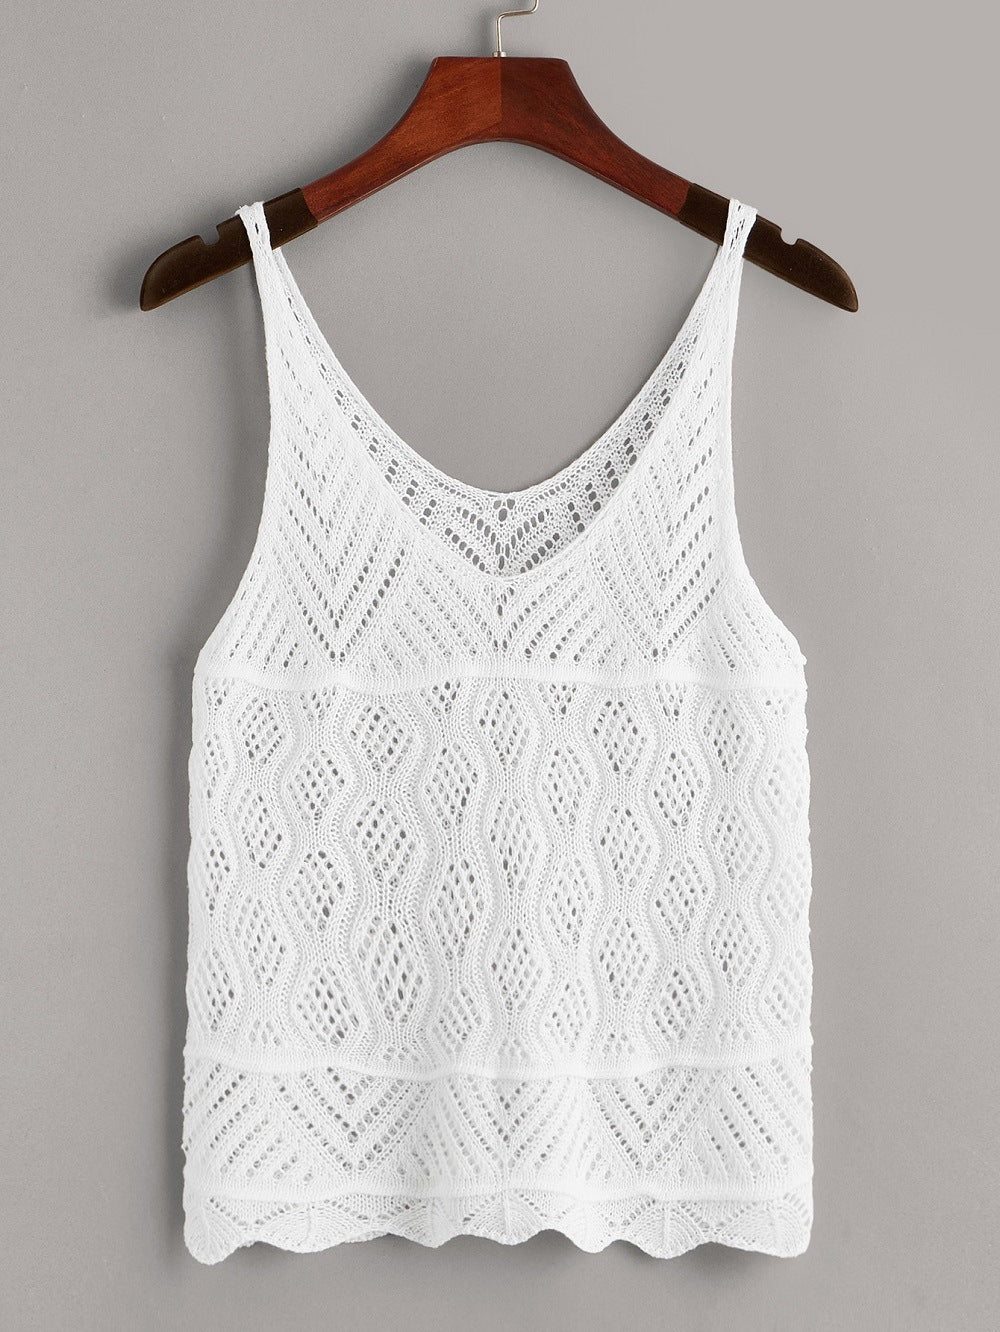 Women's Crochet Tank Top. Loose Knitted Crop Vest Top for Lady